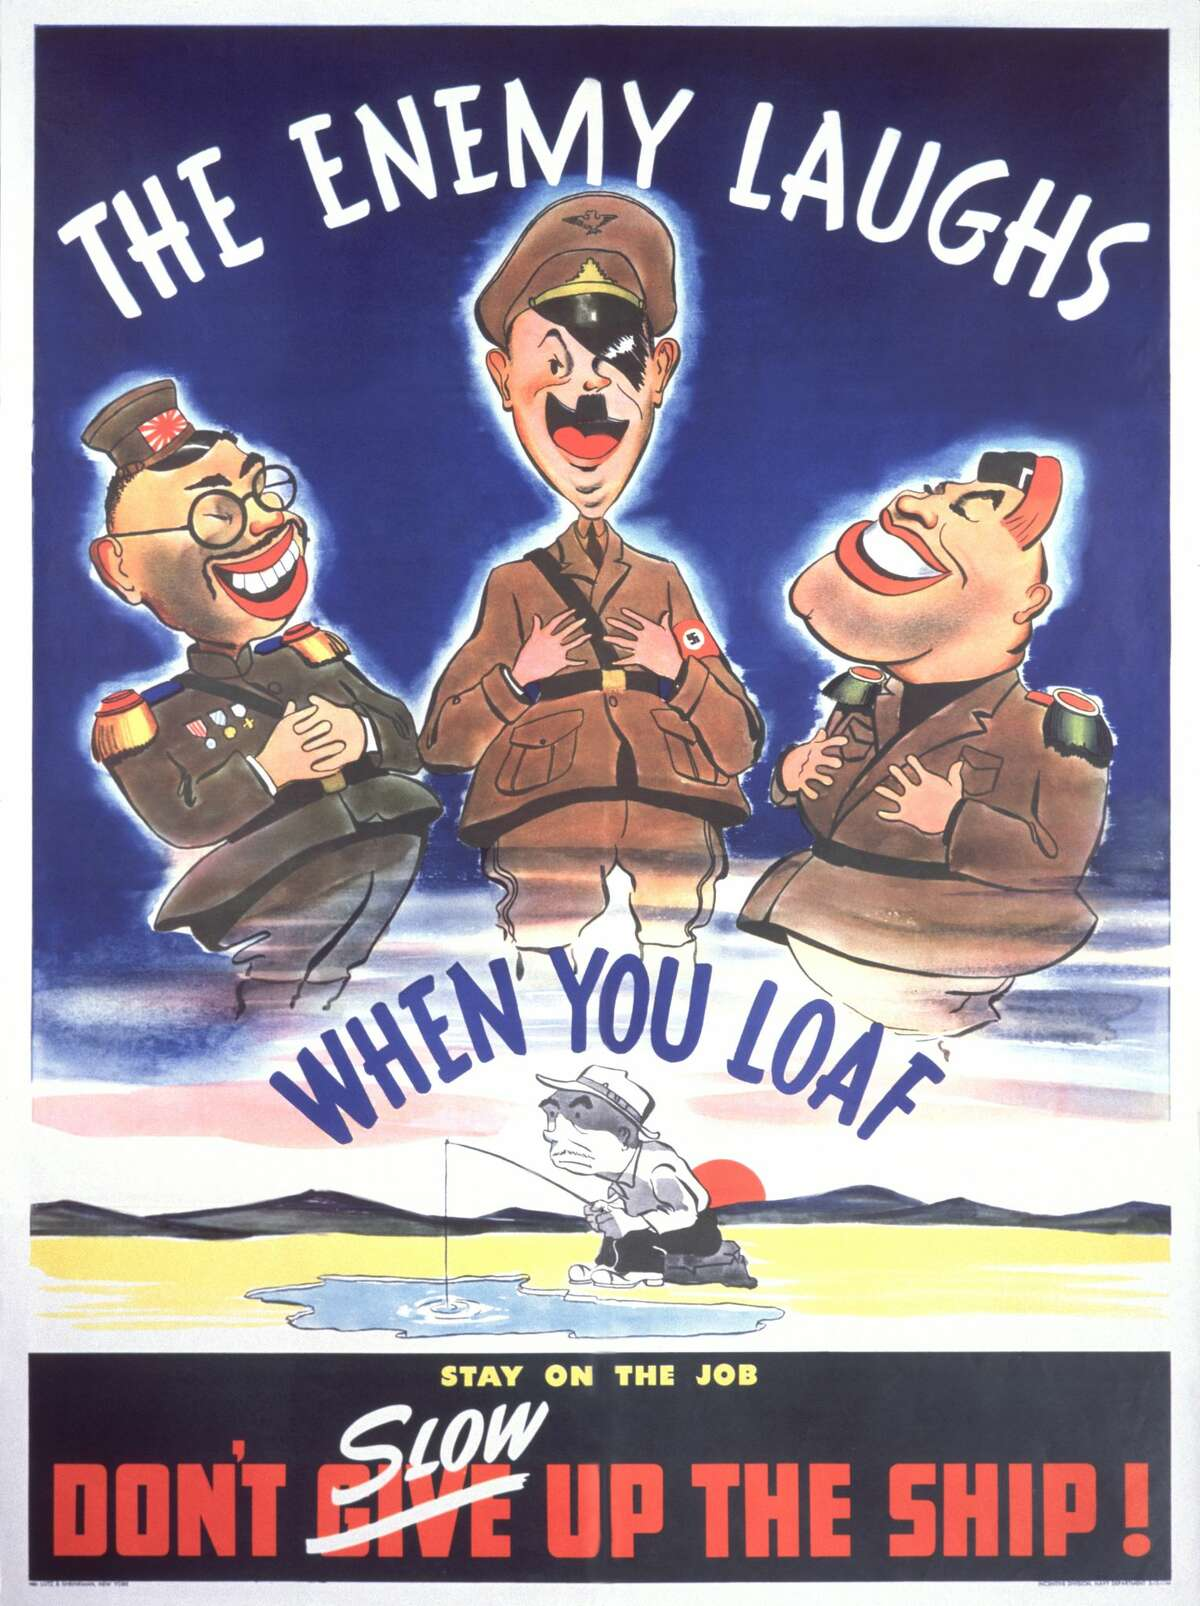 The U.S. Navy warned sailors against laziness, which weakened the navy and aided its enemies. Editor's Note: Propaganda art of the 1940s often depicted images now considered racist or otherwise offensive. They are presented here unedited for educational and historical purposes to demonstrate how these types of images were used to draw up fervor against and hatred for foreign enemies during World War II.